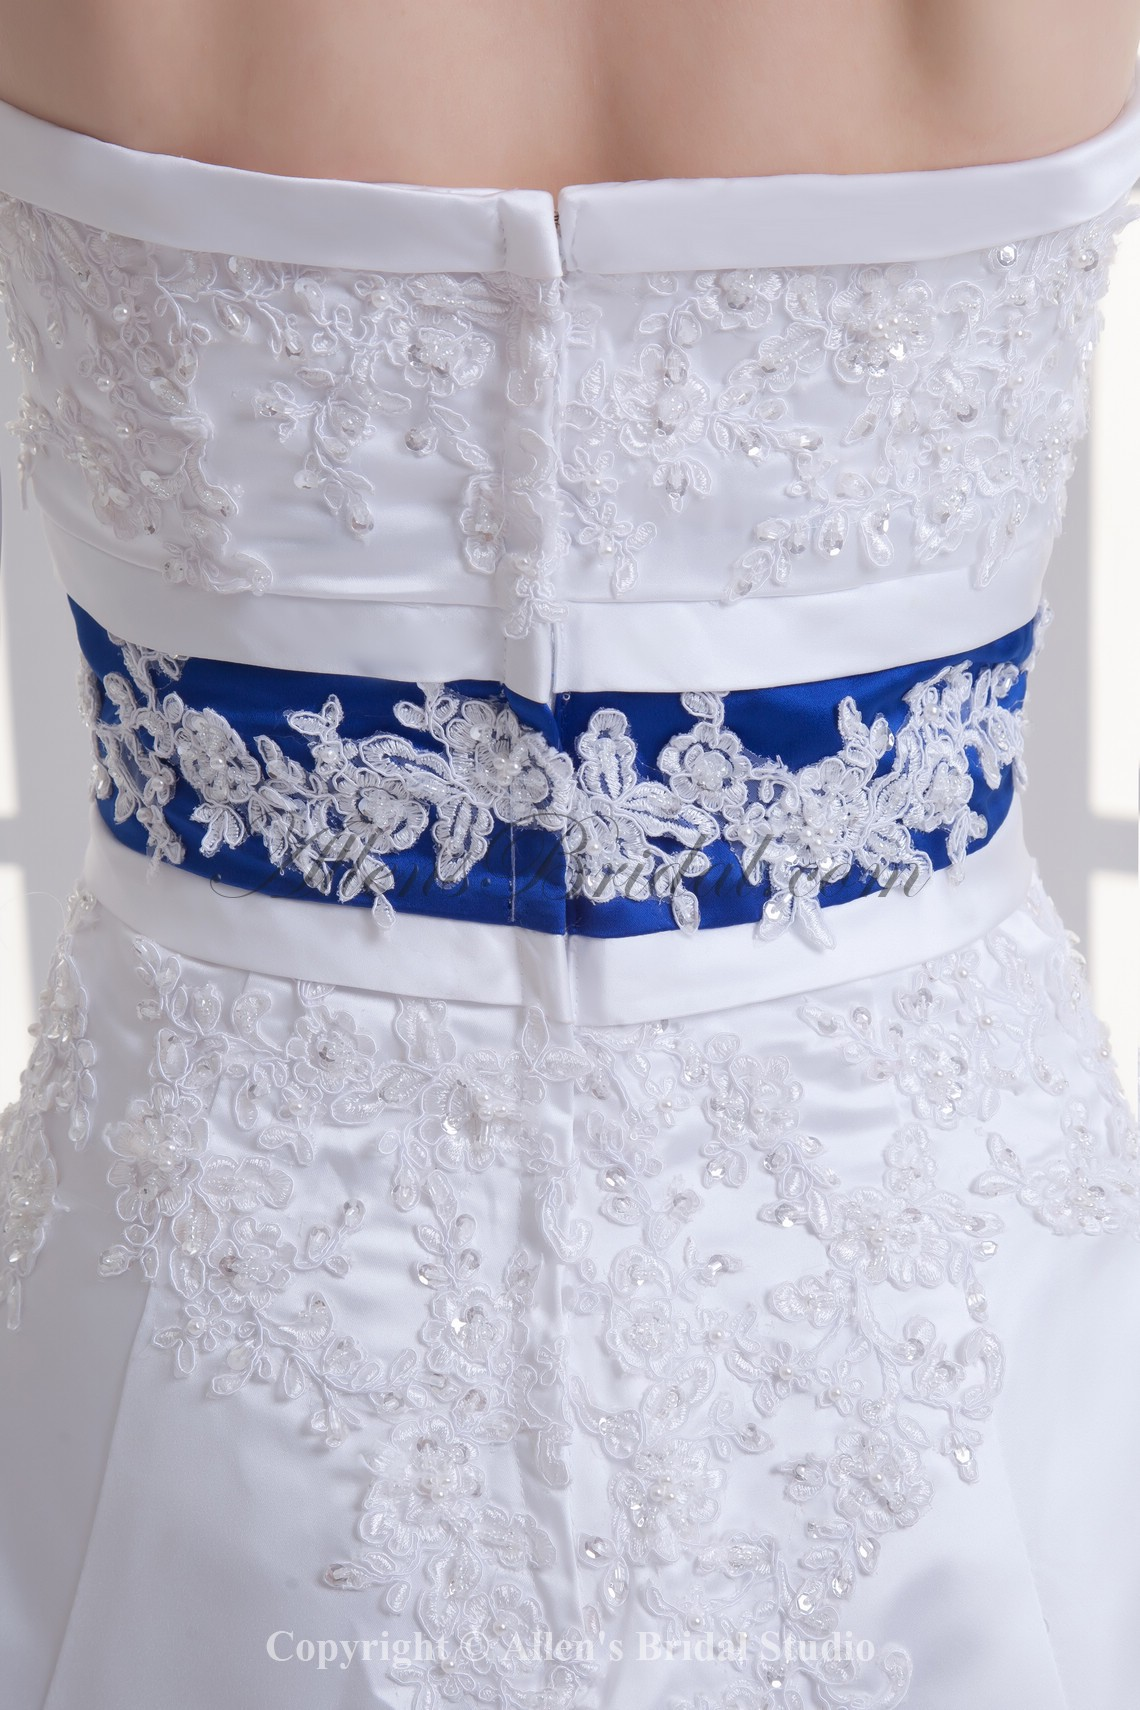 /1052-8438/satin-strapless-a-line-sweep-train-embroidered-wedding-dress.jpg